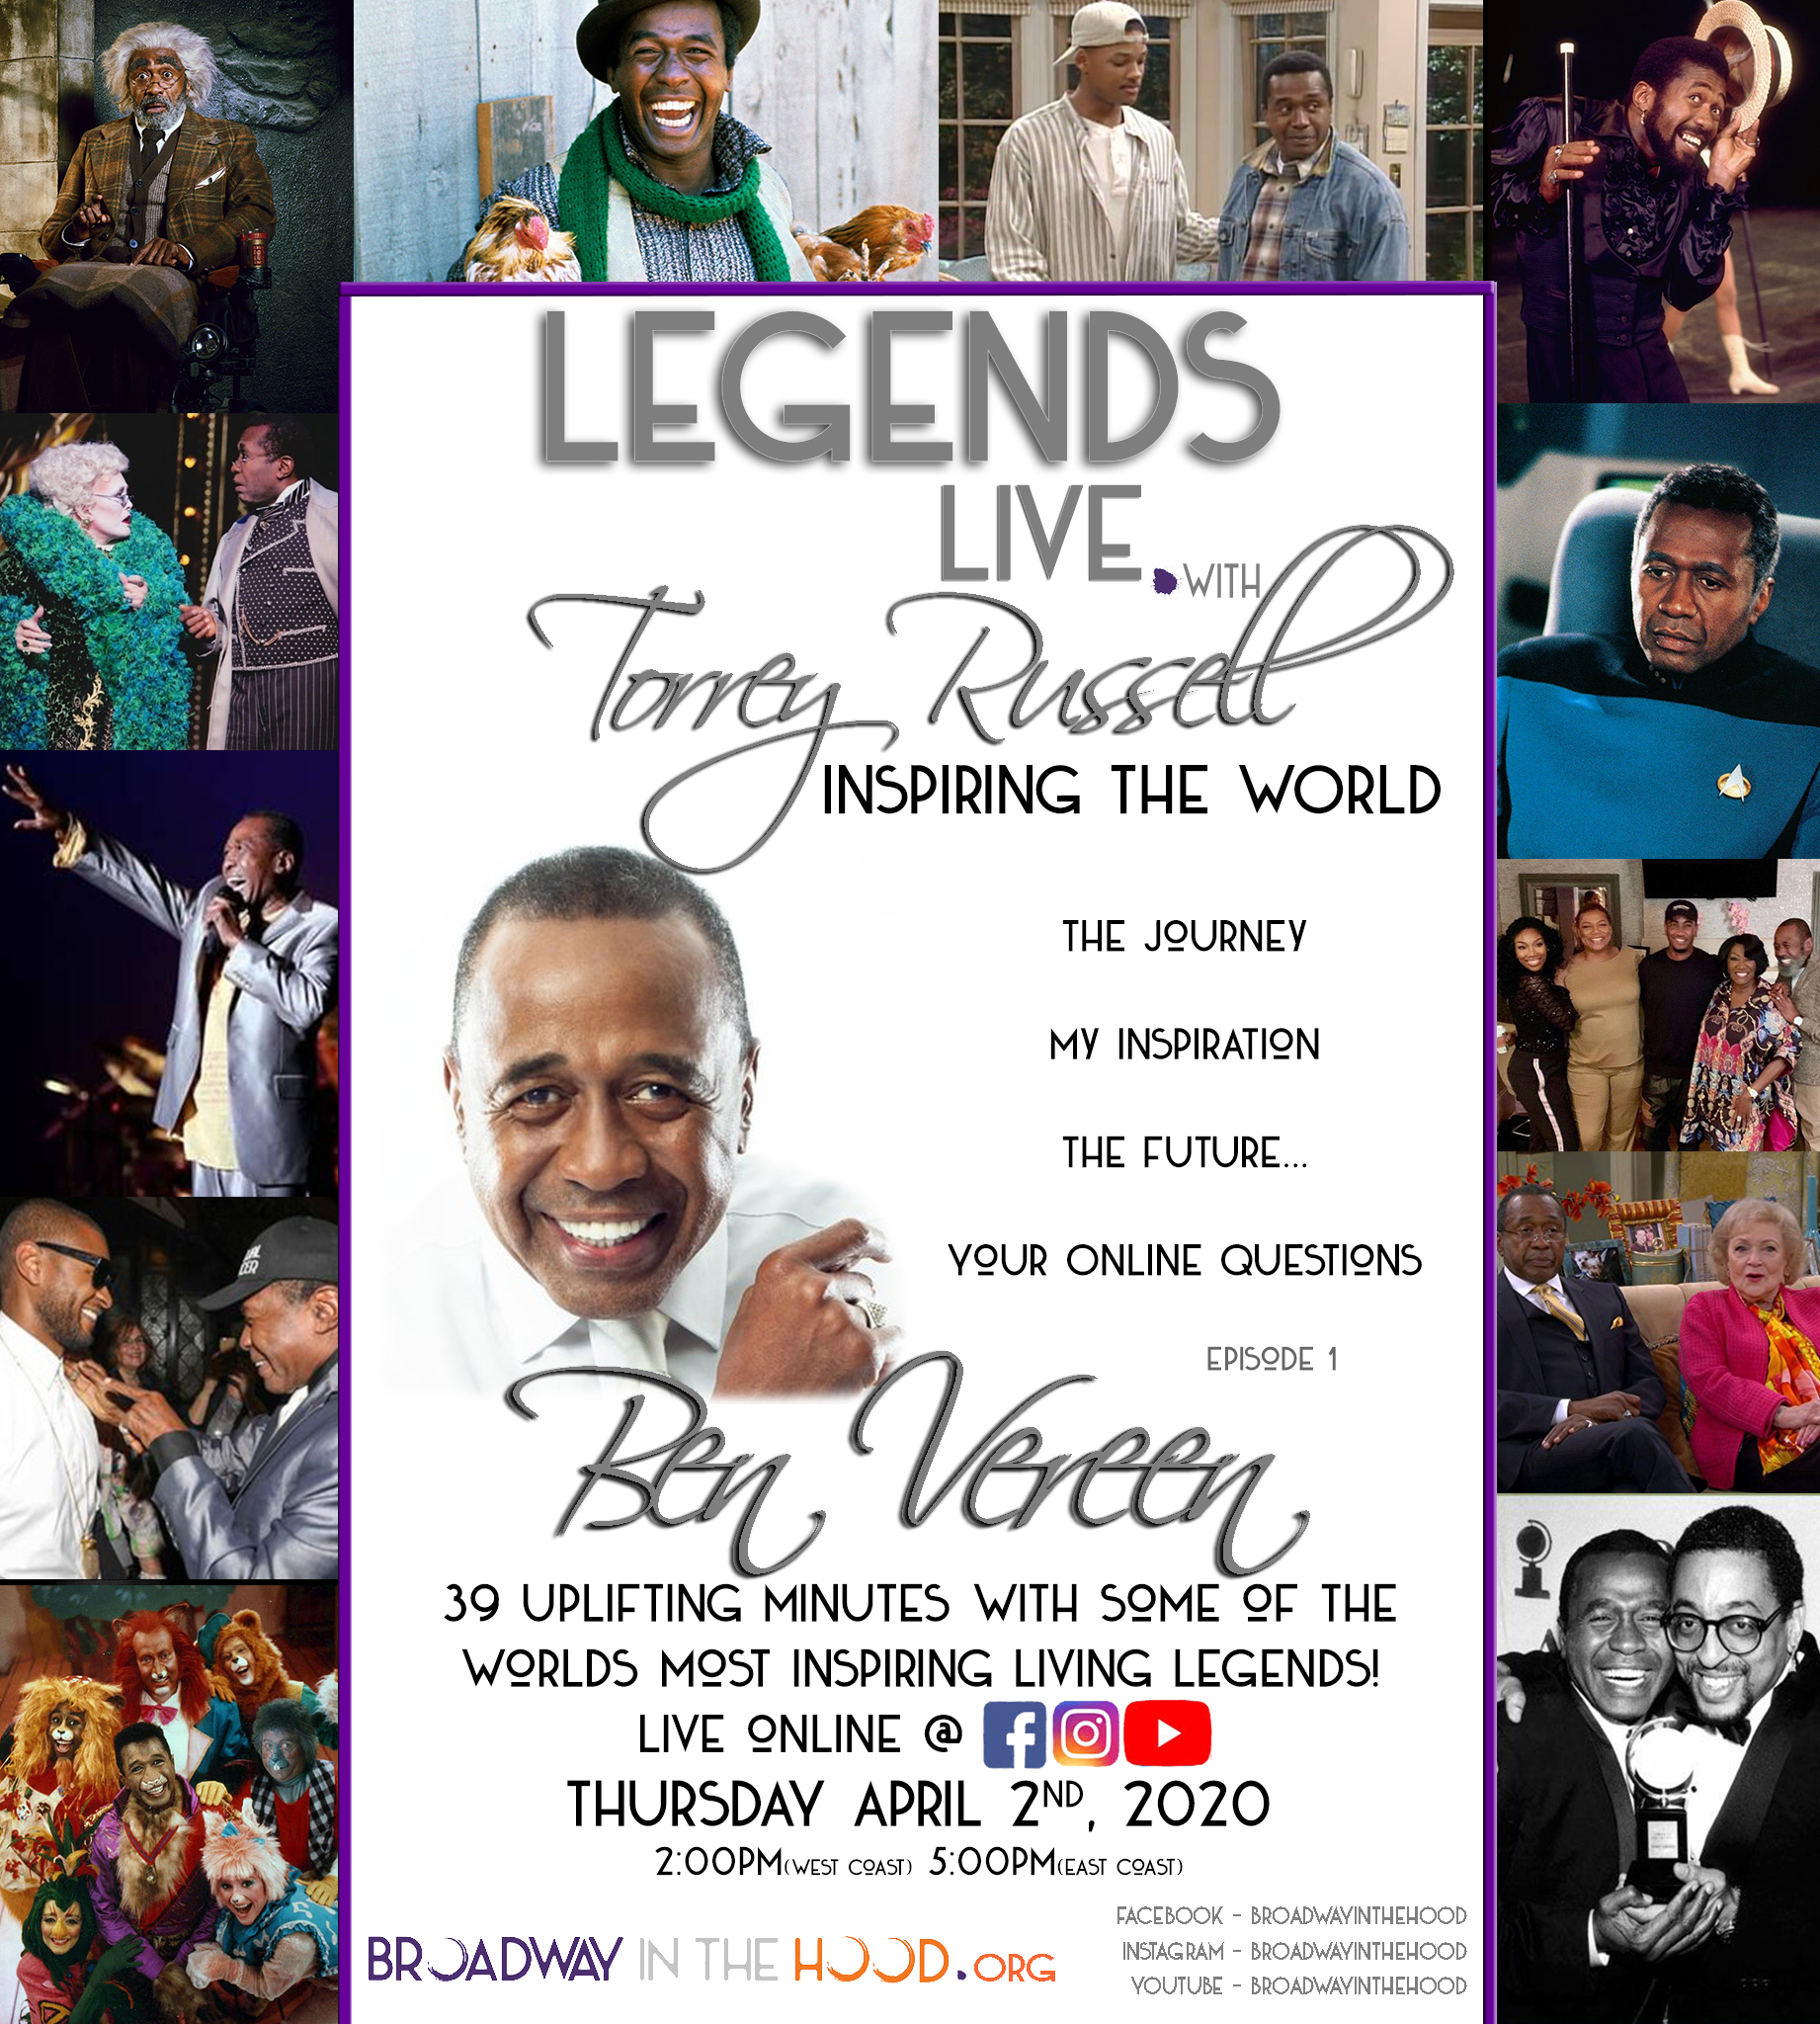 Ben Vereen to Appear as Inaugural Guest on New Online Series LEGENDS LIVE: WITH TORREY RUSSELL